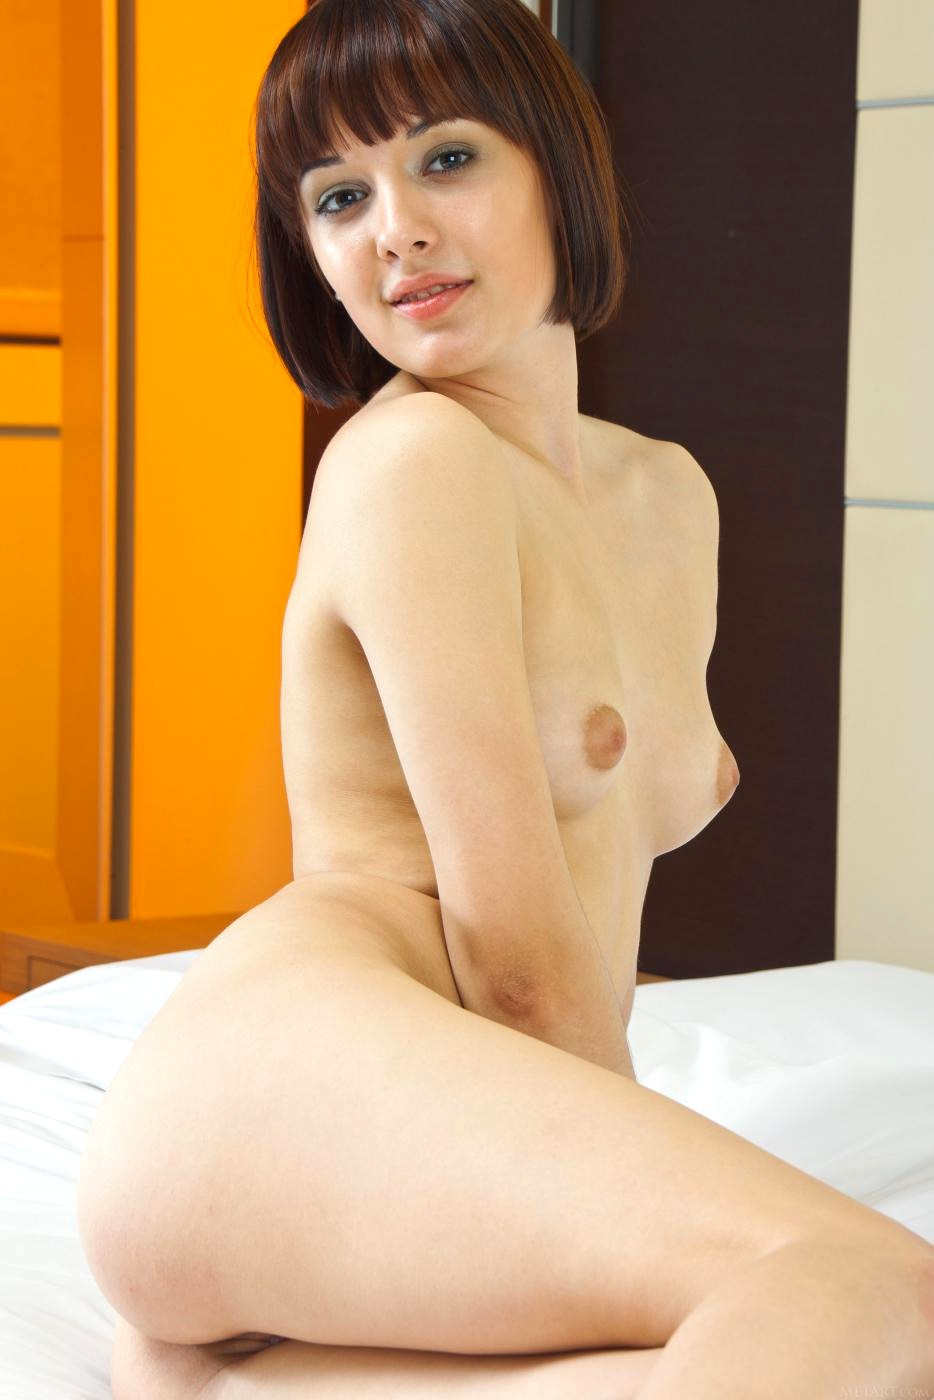 met-art Monika-G-most nude